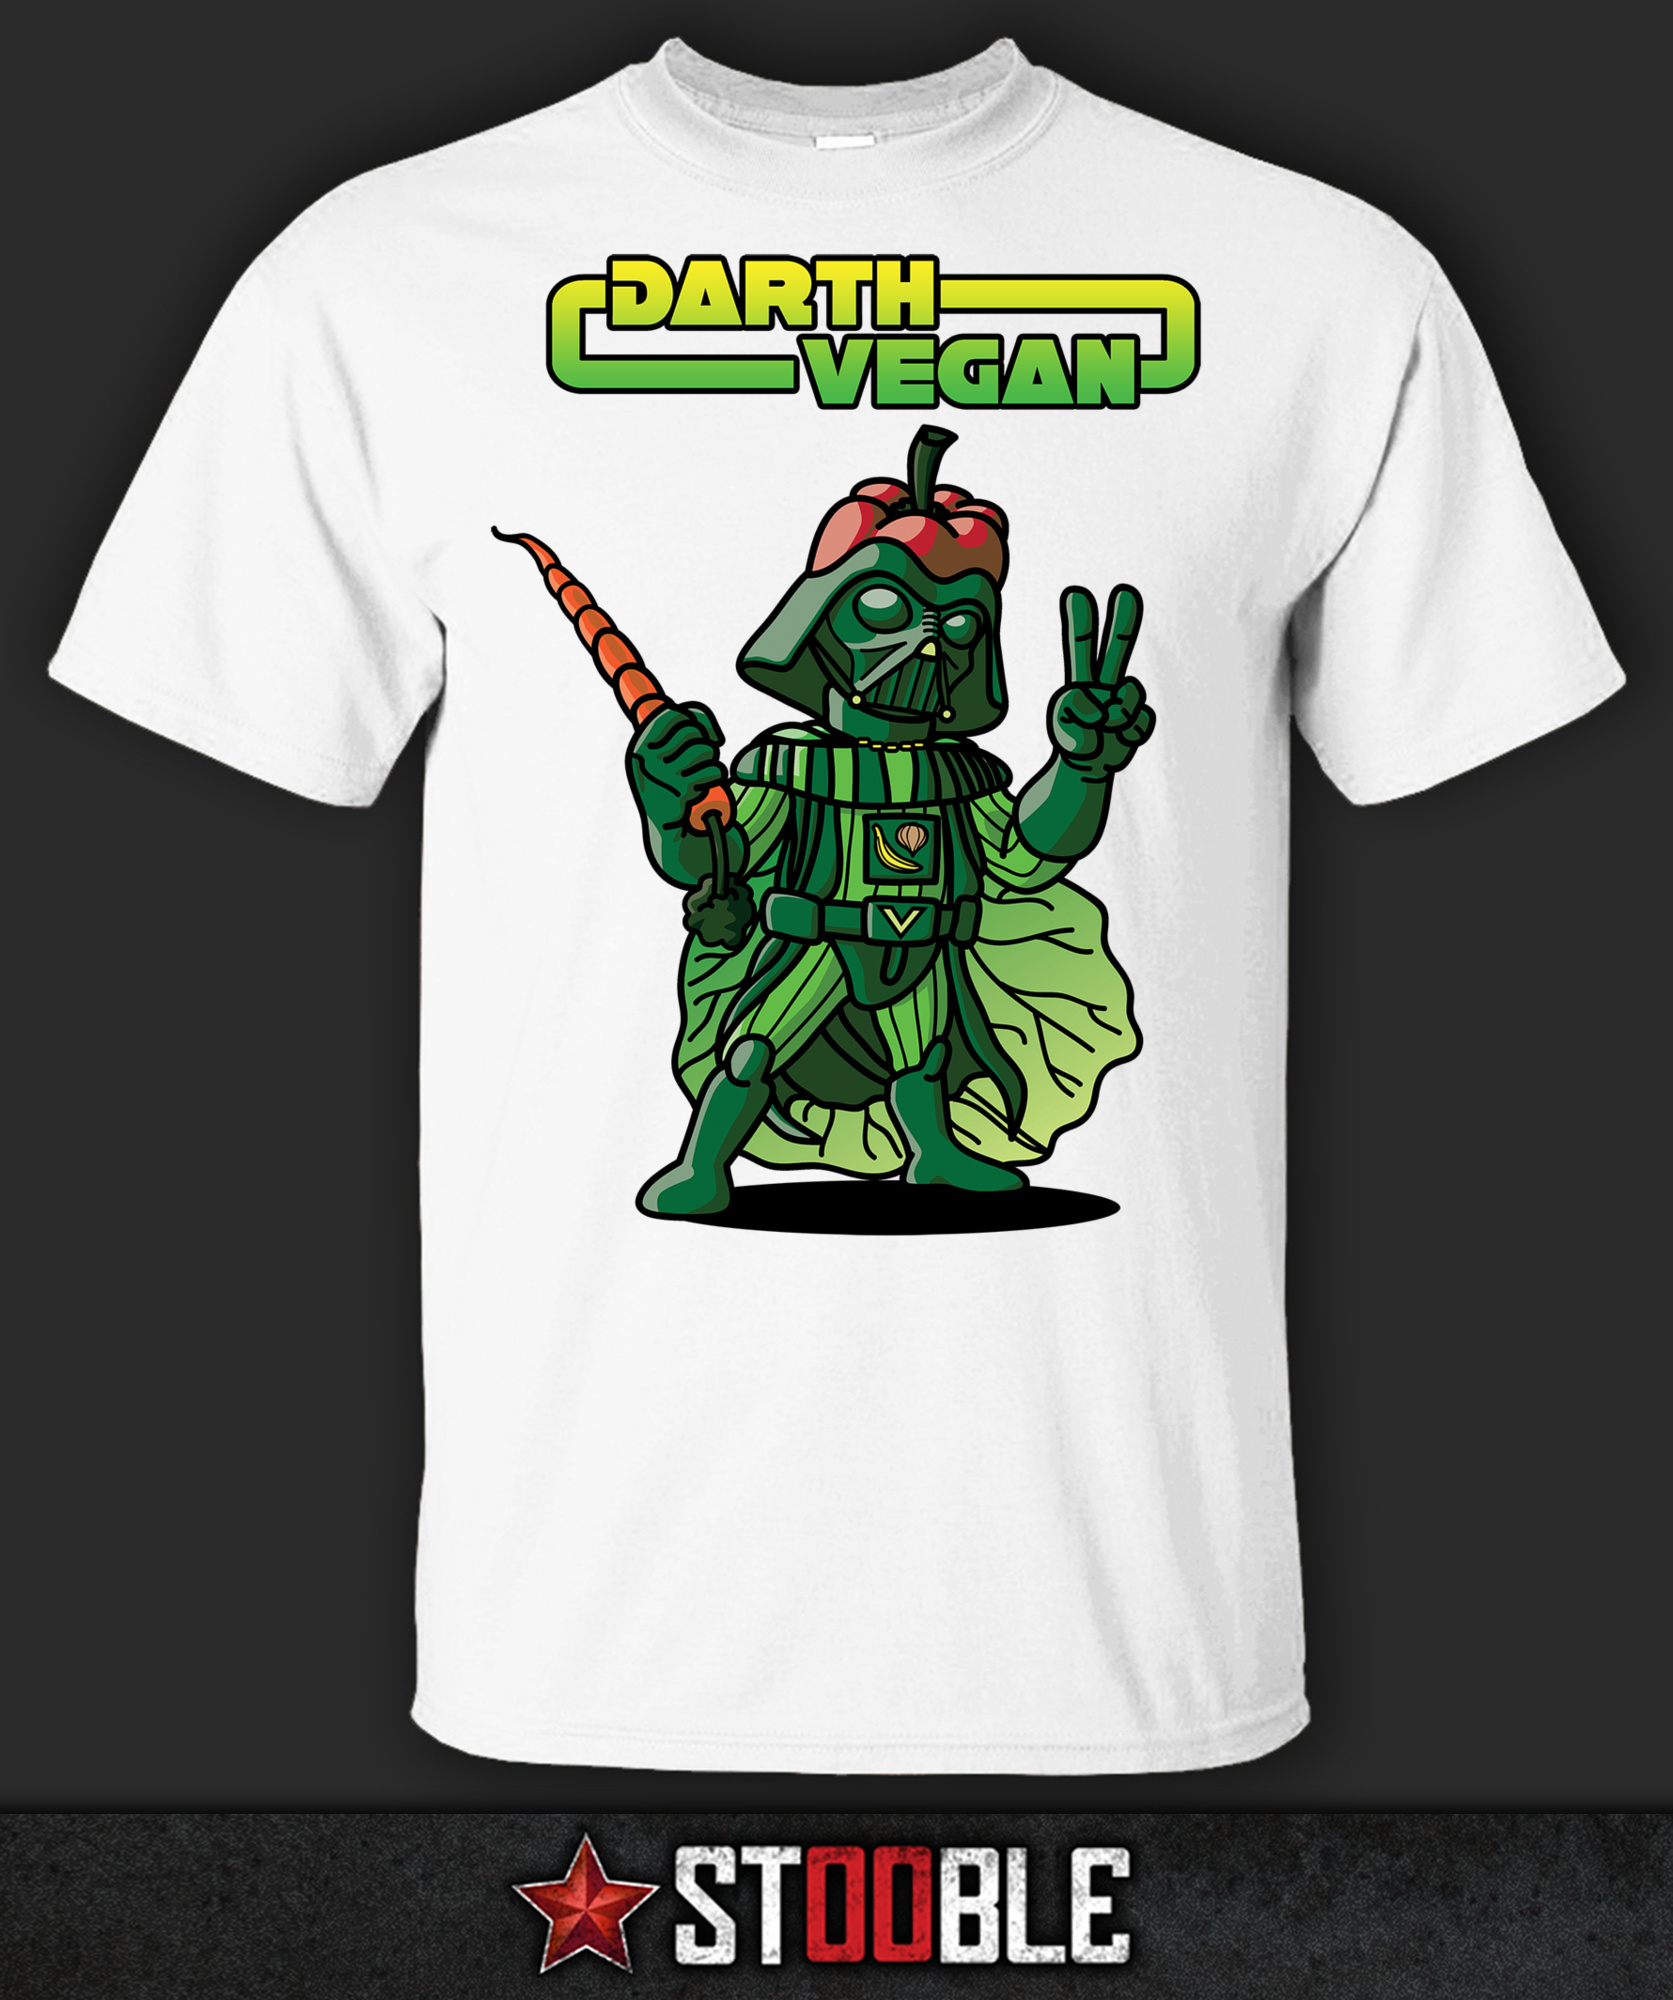 Darth vegan t shirt direct from stockist ebay for Direct from the designers